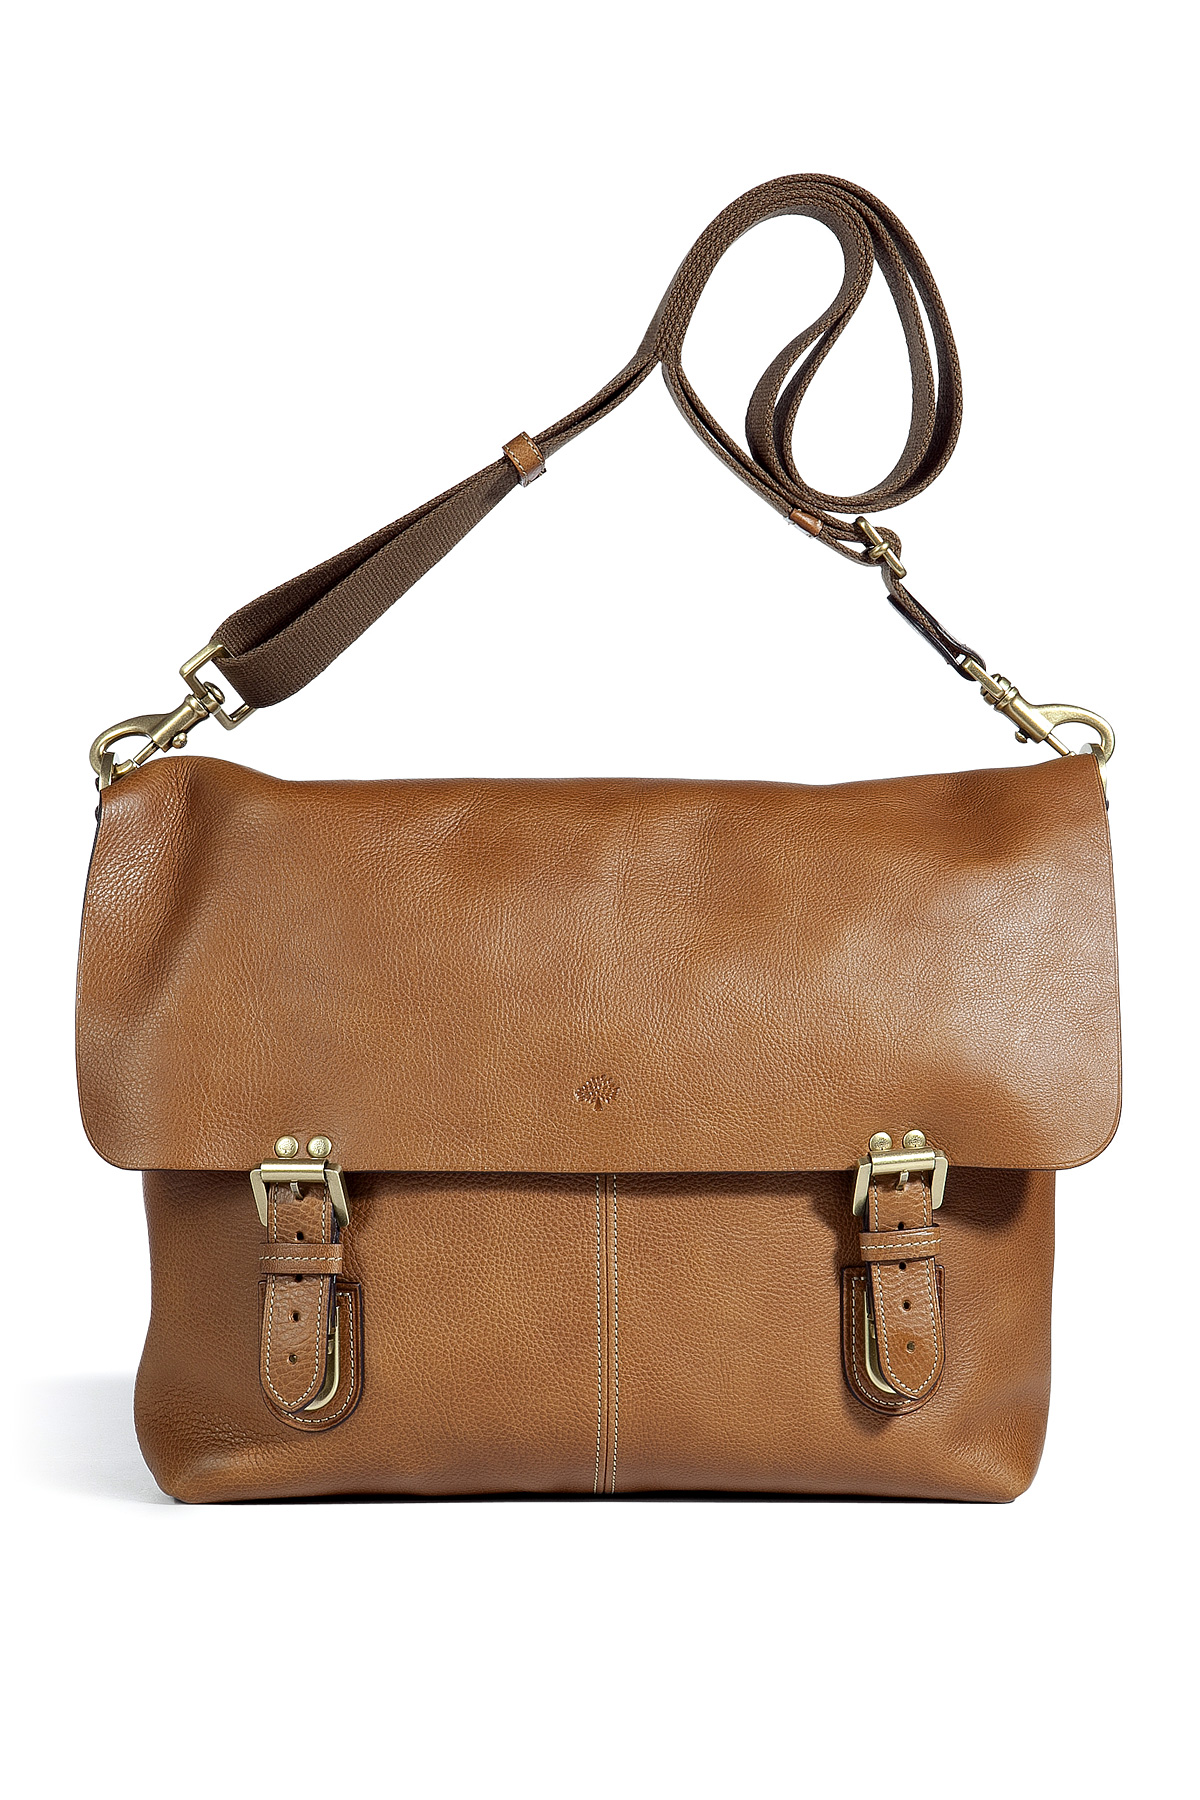 461cc1744663 Lyst - Mulberry Barnaby Messenger Bag in Brown for Men